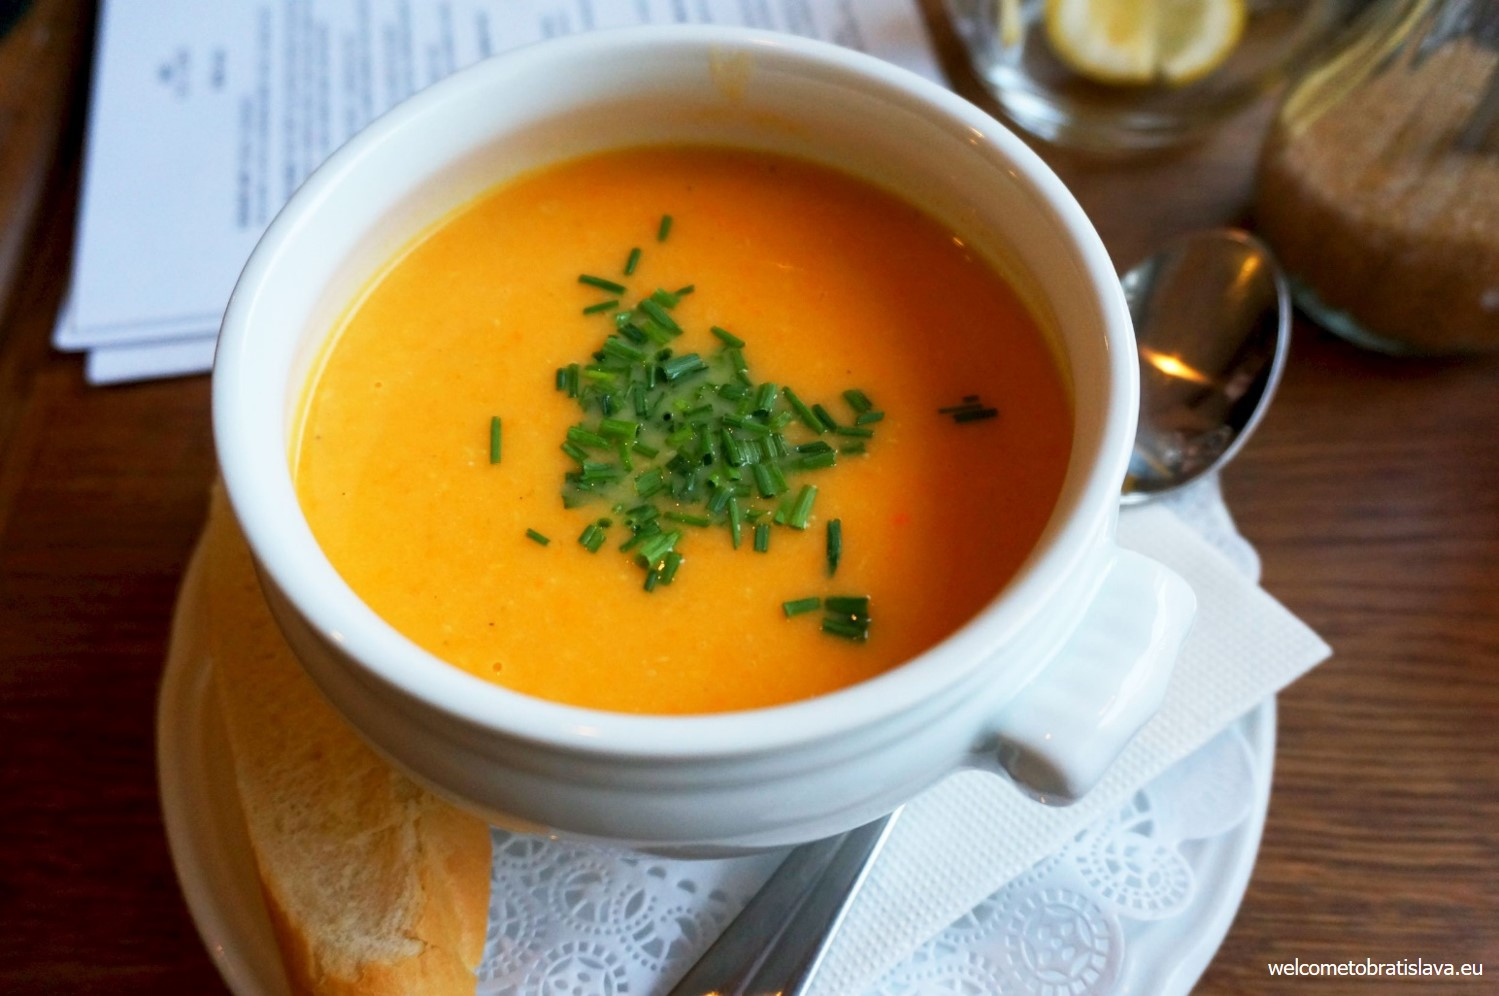 In the autumn and winter time St. Germain includes soups to their menu.